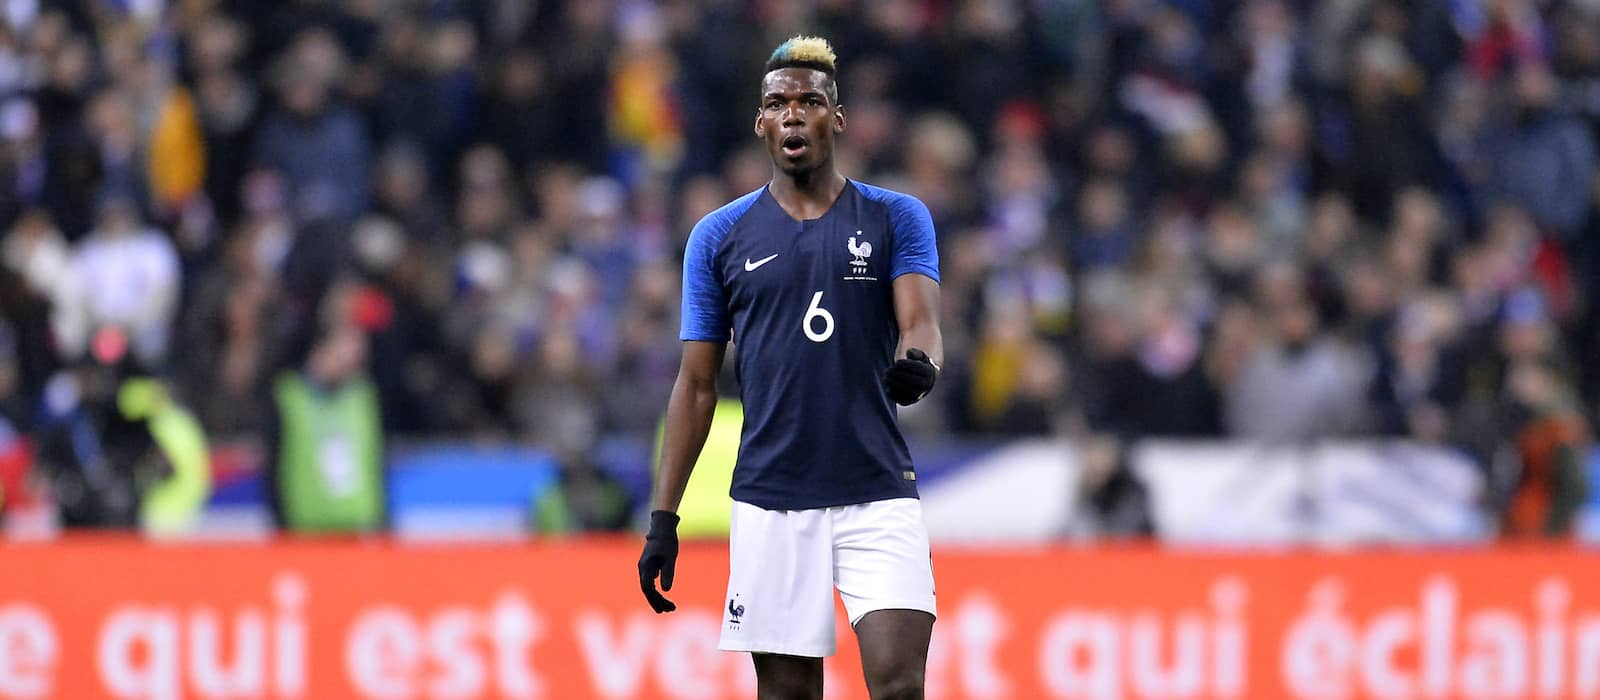 Manchester United fans furious with Paul Pogba's behaviour on international duty